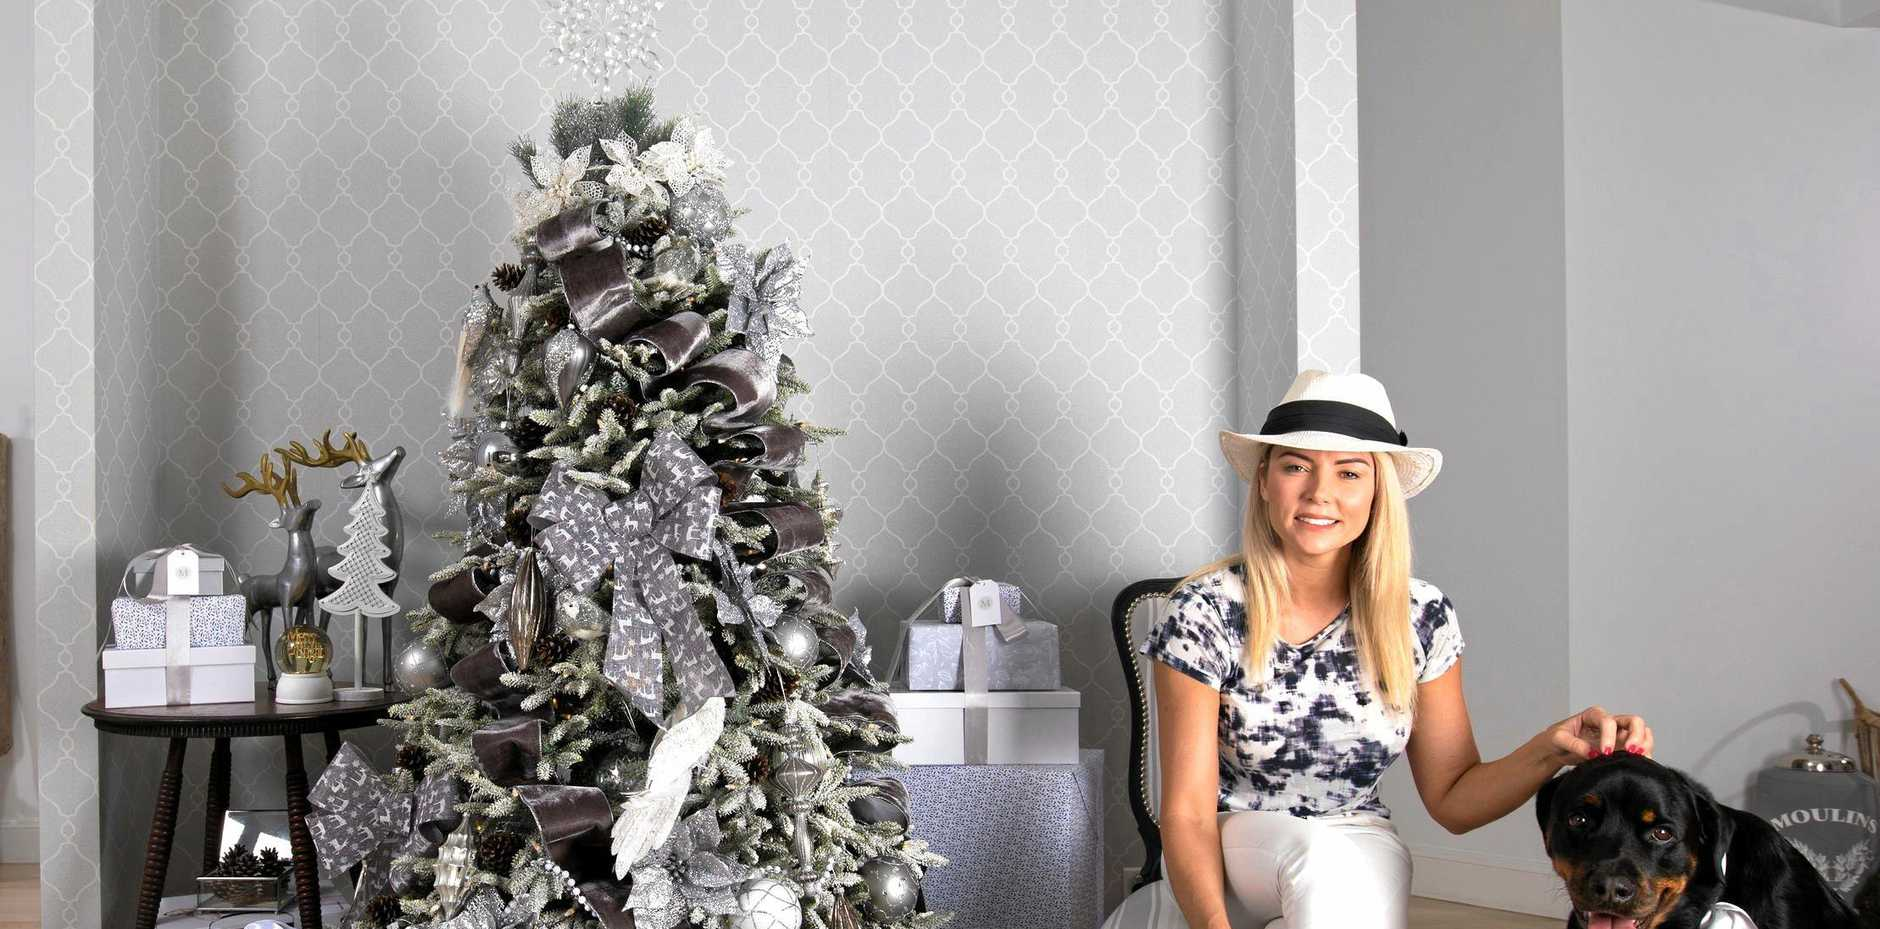 Danni Morrison shares her best tips on how to decorate your entire home this Christmas.